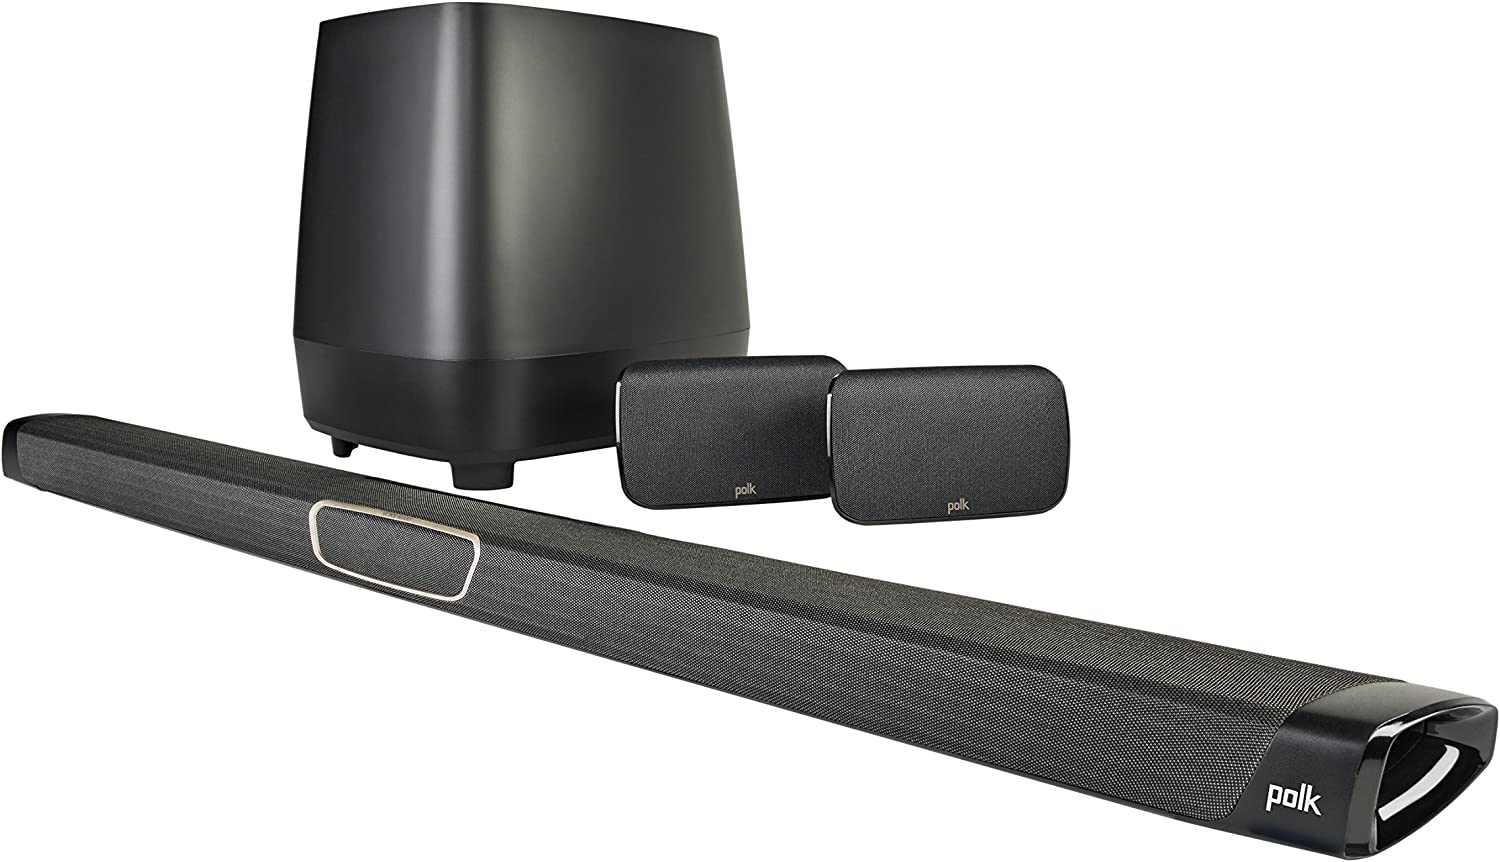 Polk Audio MagniFi Max SR Home Theater Surround Sound Bar | Works with 4K & HD TVs | HDMI, Optical Cables, Wireless Subwoofer & Two Speakers Included Black